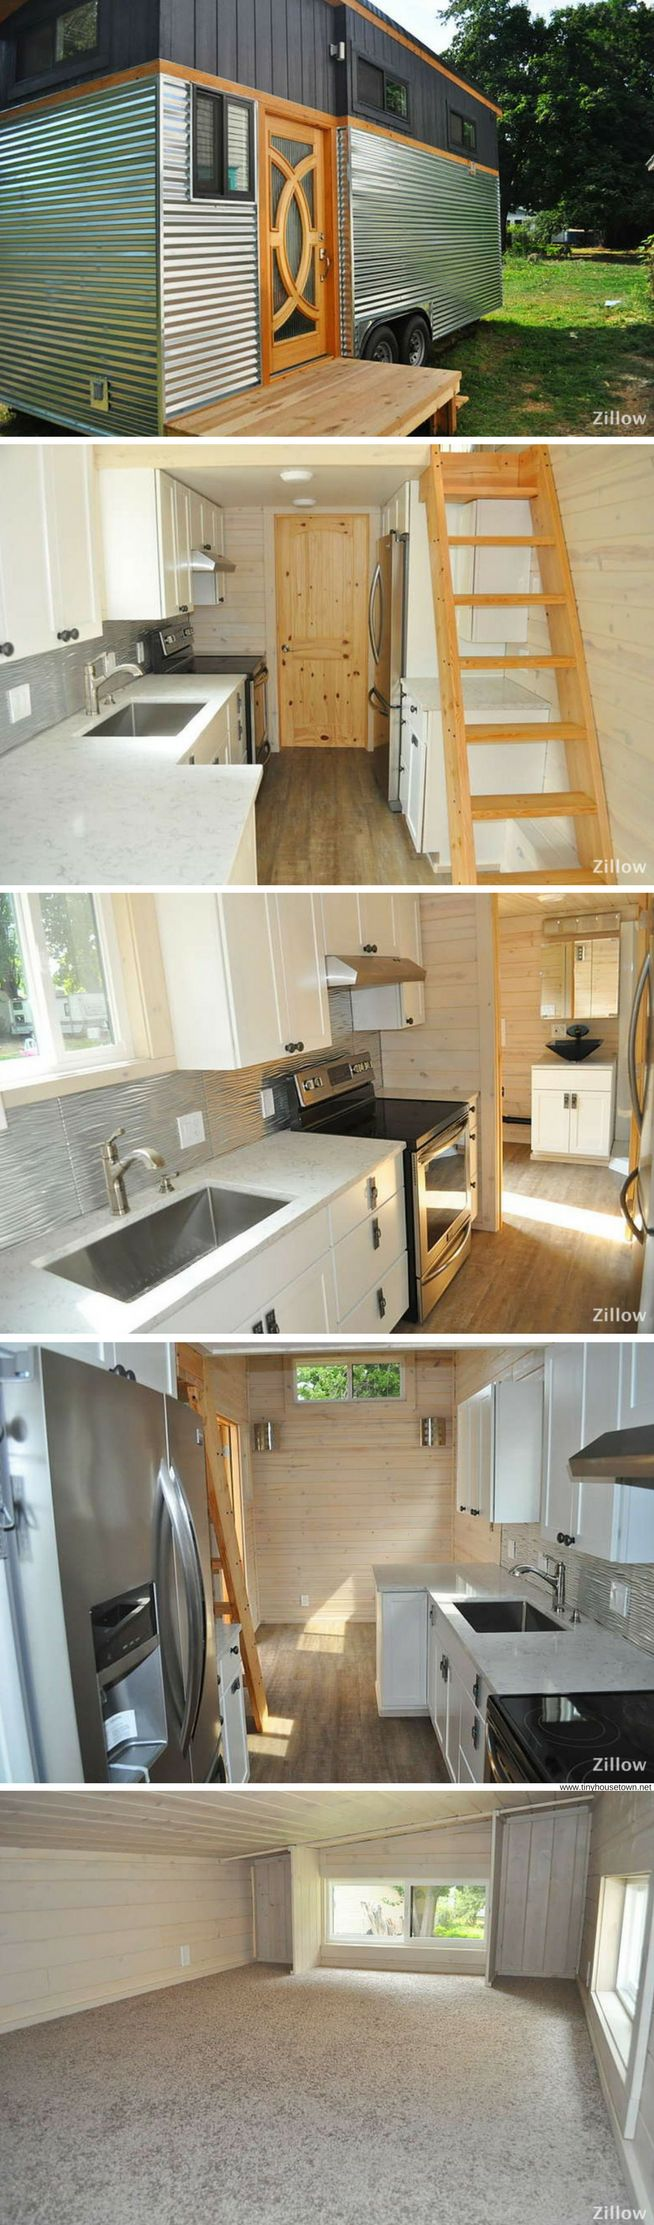 A tiny home available for sale in Sandpoint, Idaho!